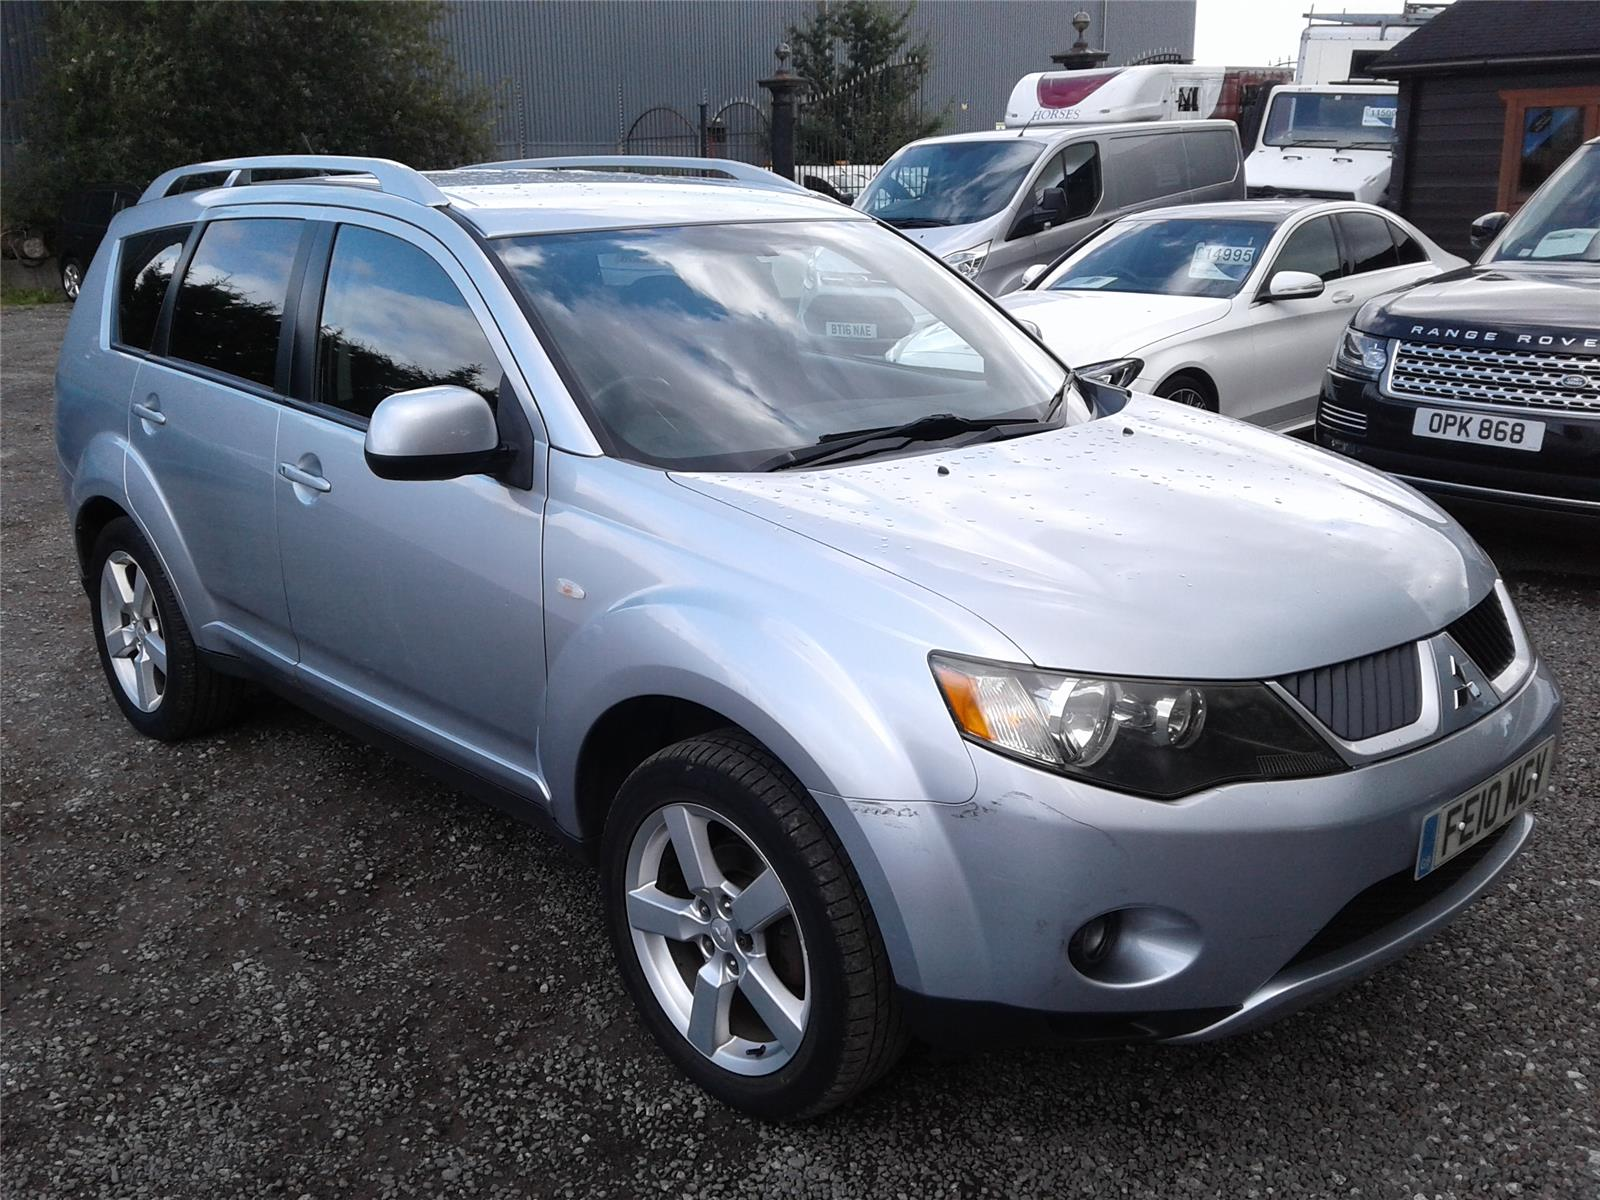 2010 Mitsubishi Outlander SE 1968 Diesel Manual 6 Speed 5 Door 4x4